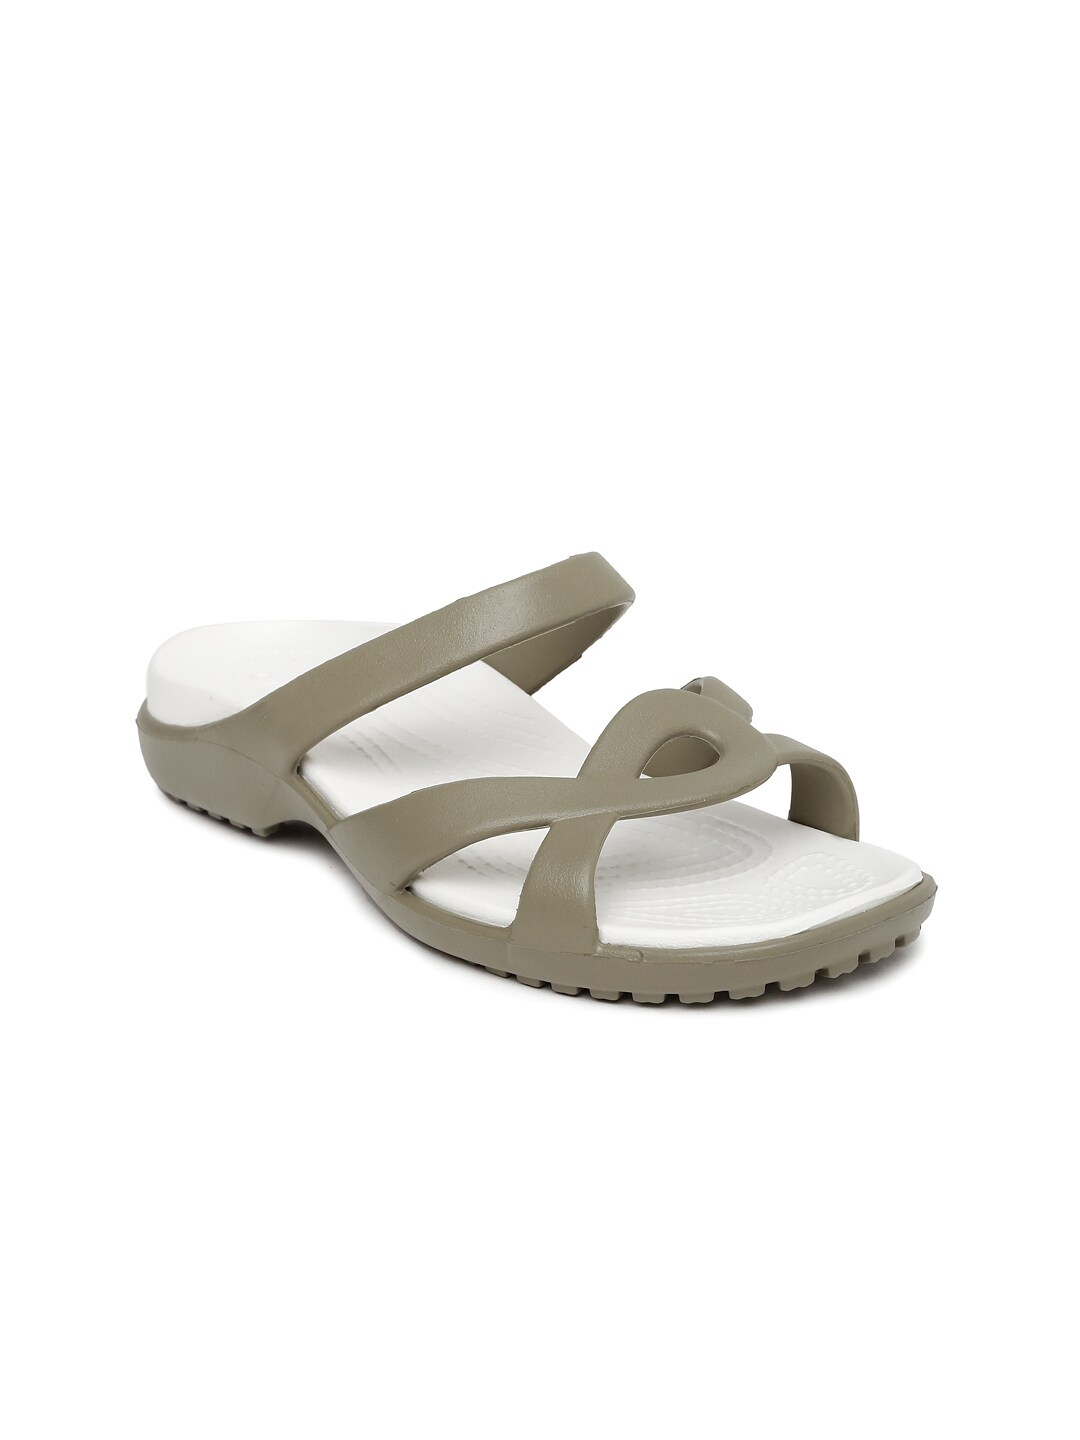 0005b7337b72 Crocs Shoes Online - Buy Crocs Flip Flops   Sandals Online in India - Myntra